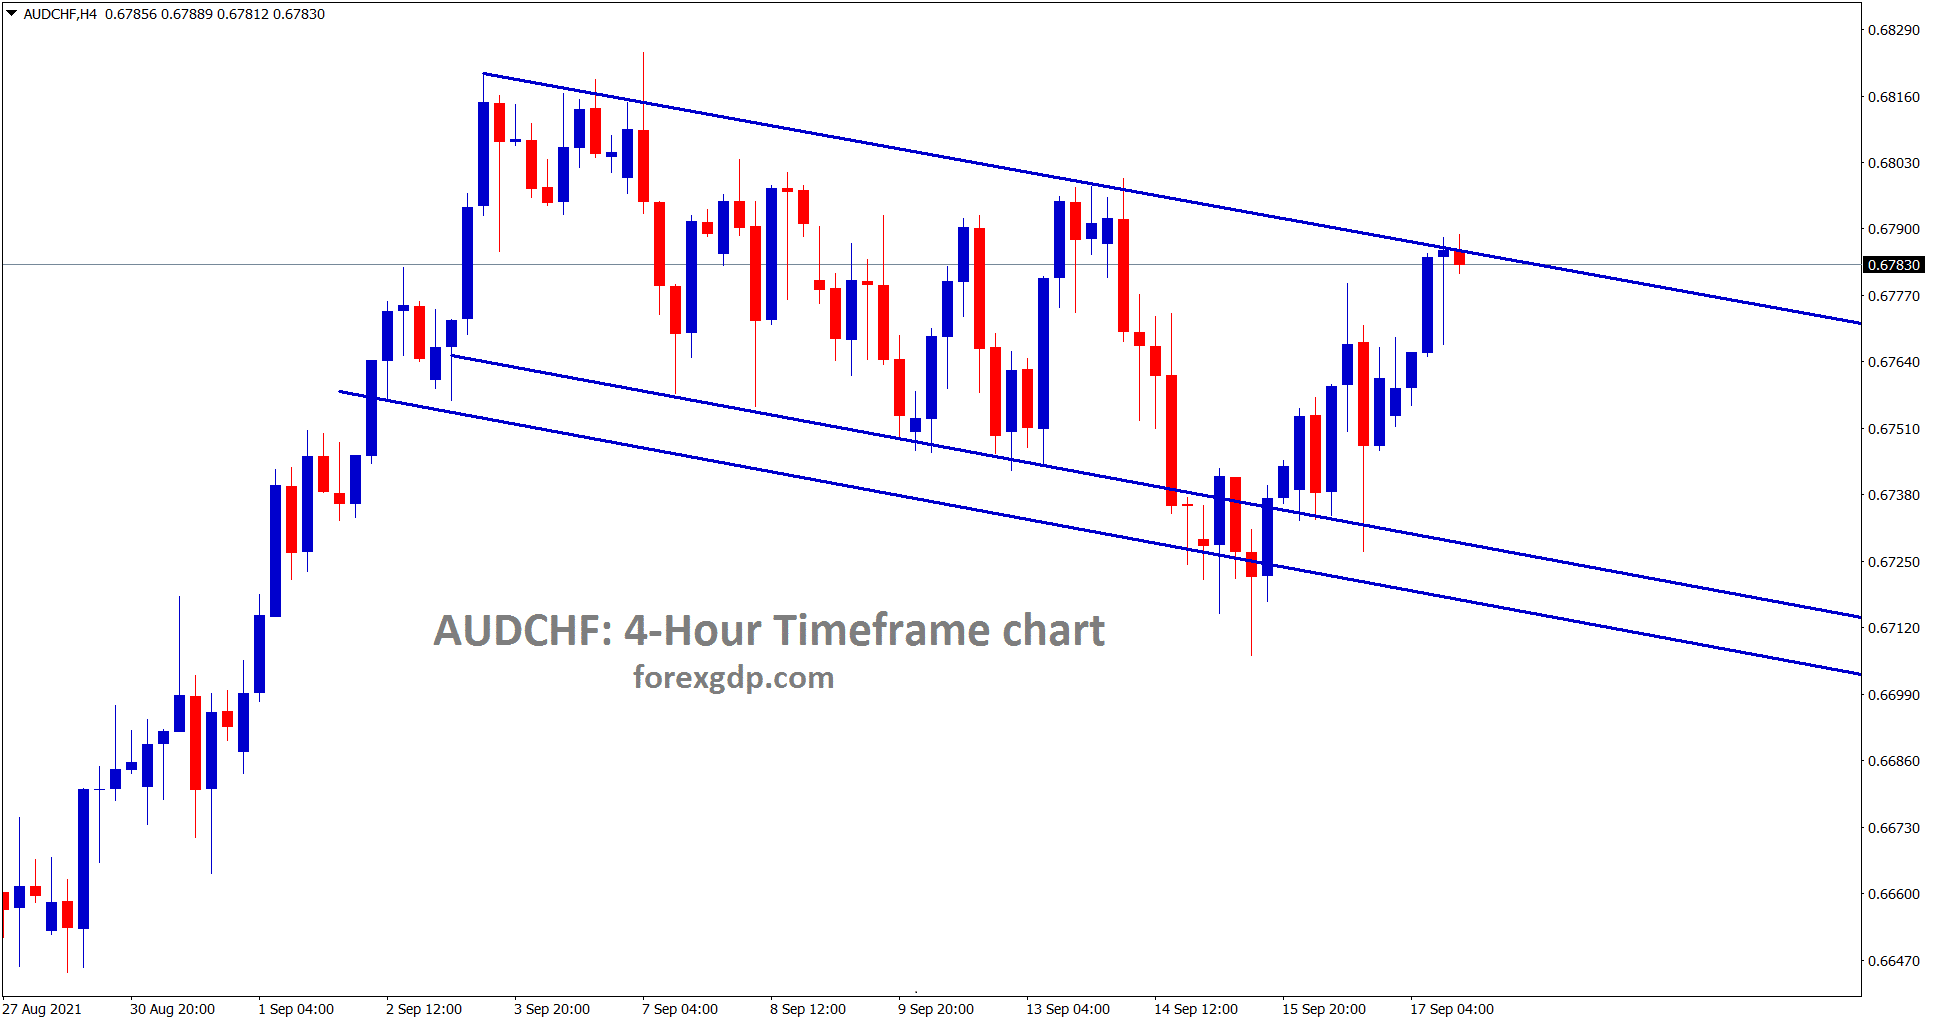 AUDCHF has reached the top level of the descending channel range